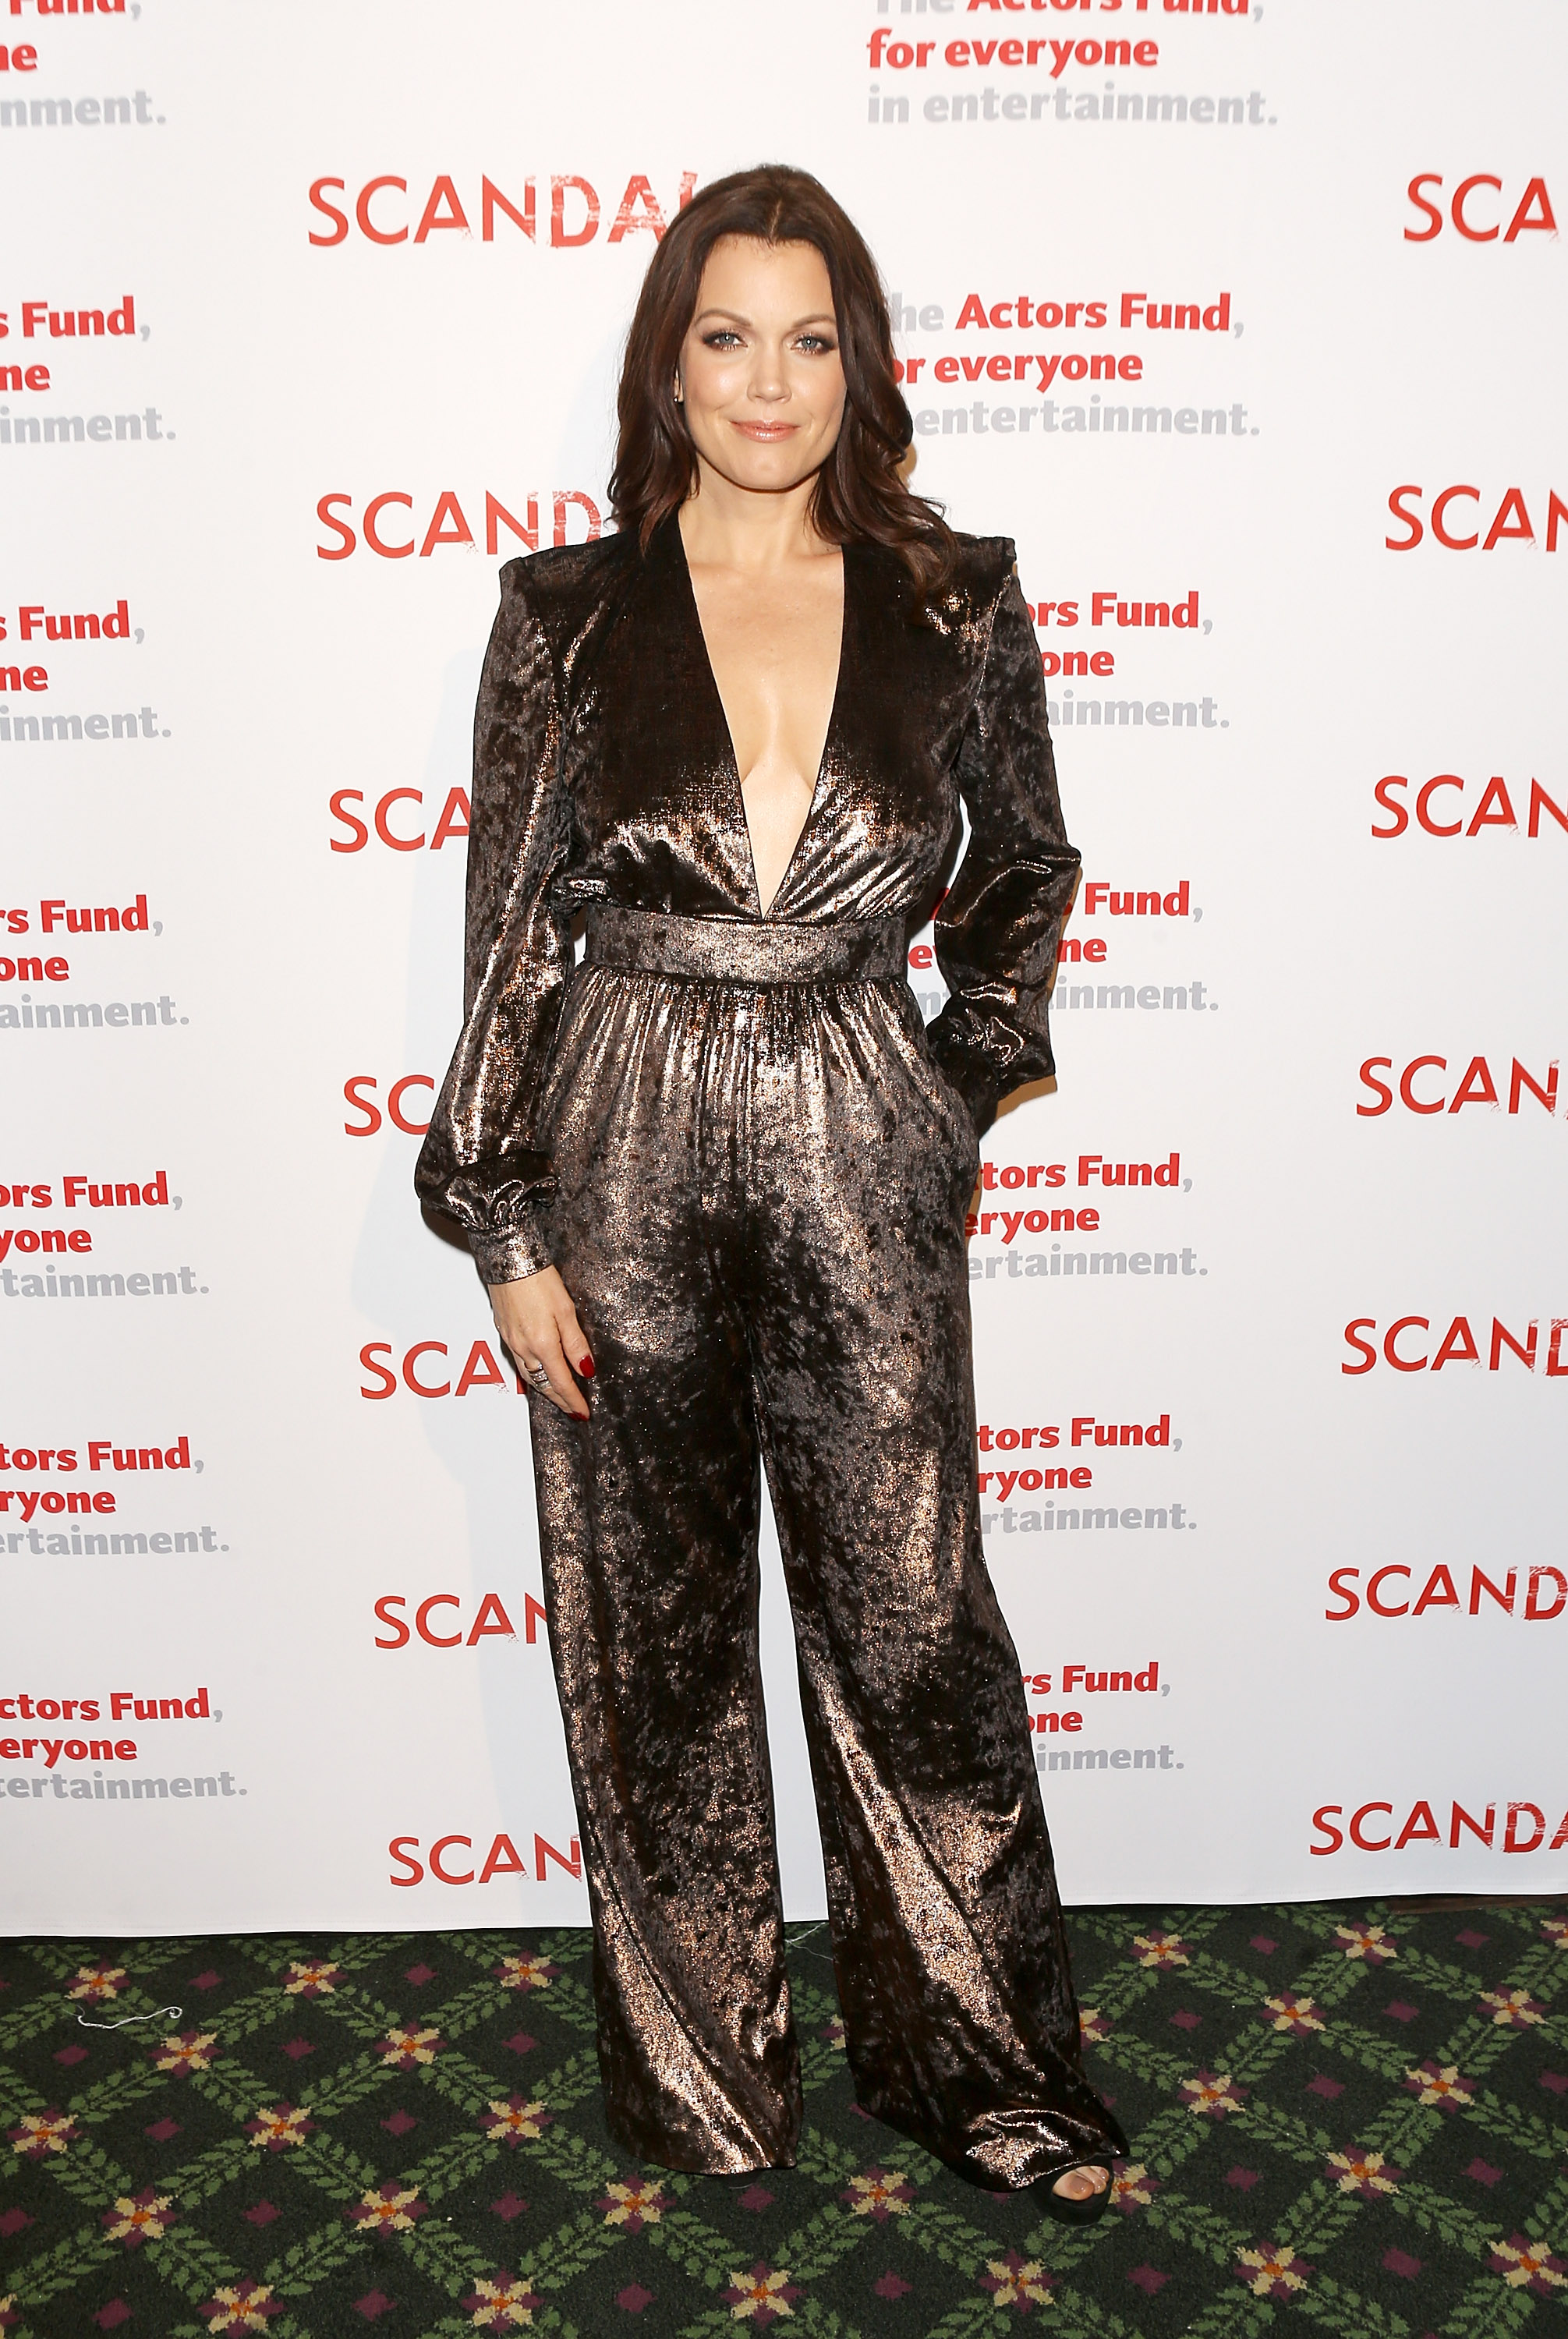 Bellamy Young, looks